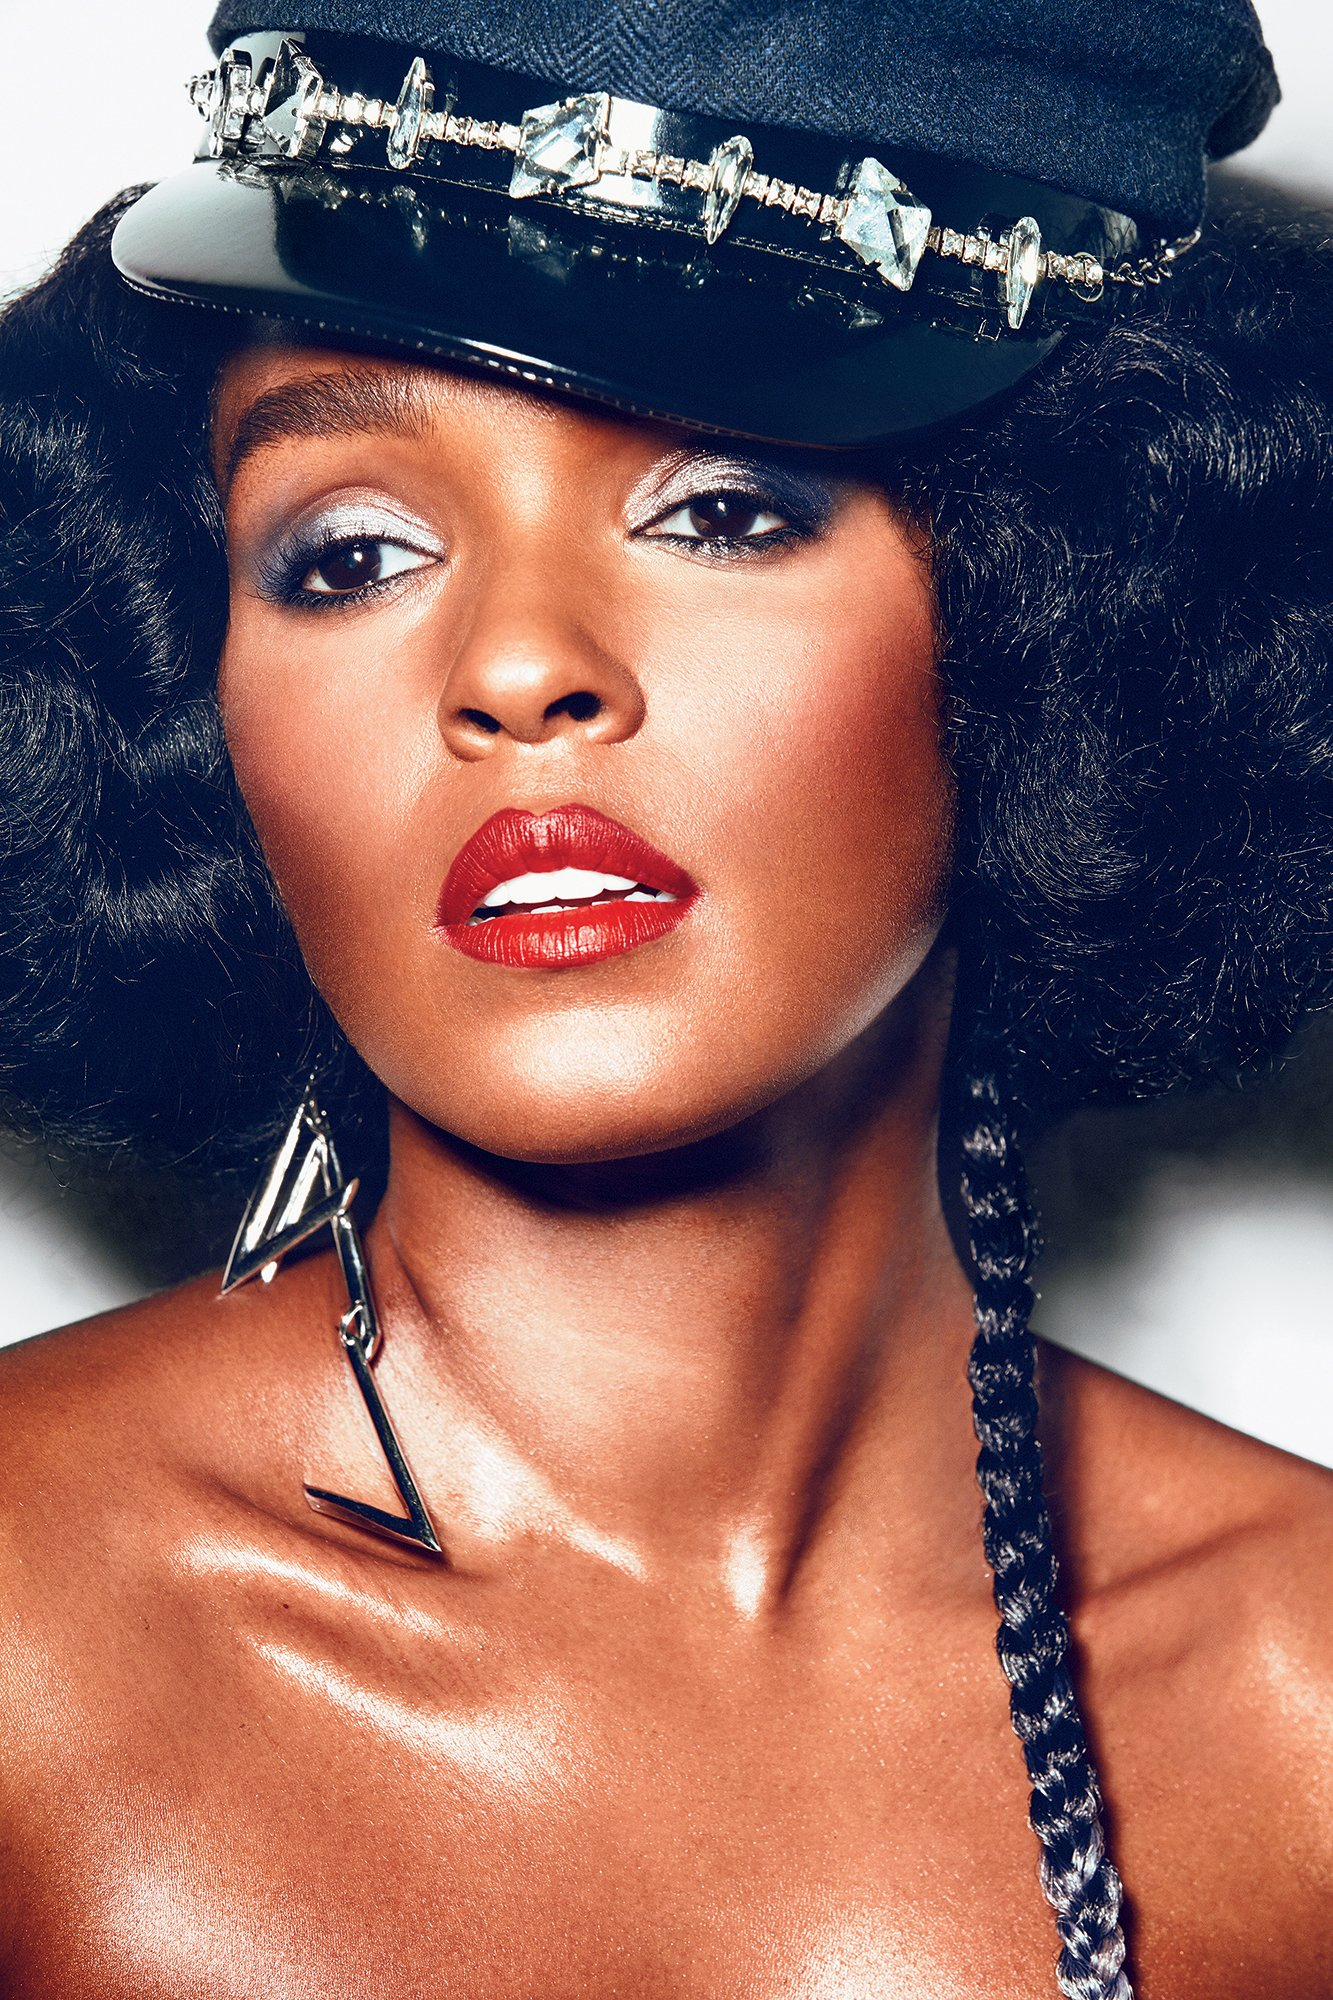 Photograph of Janelle Monáe courtesy of Atlantic Records.